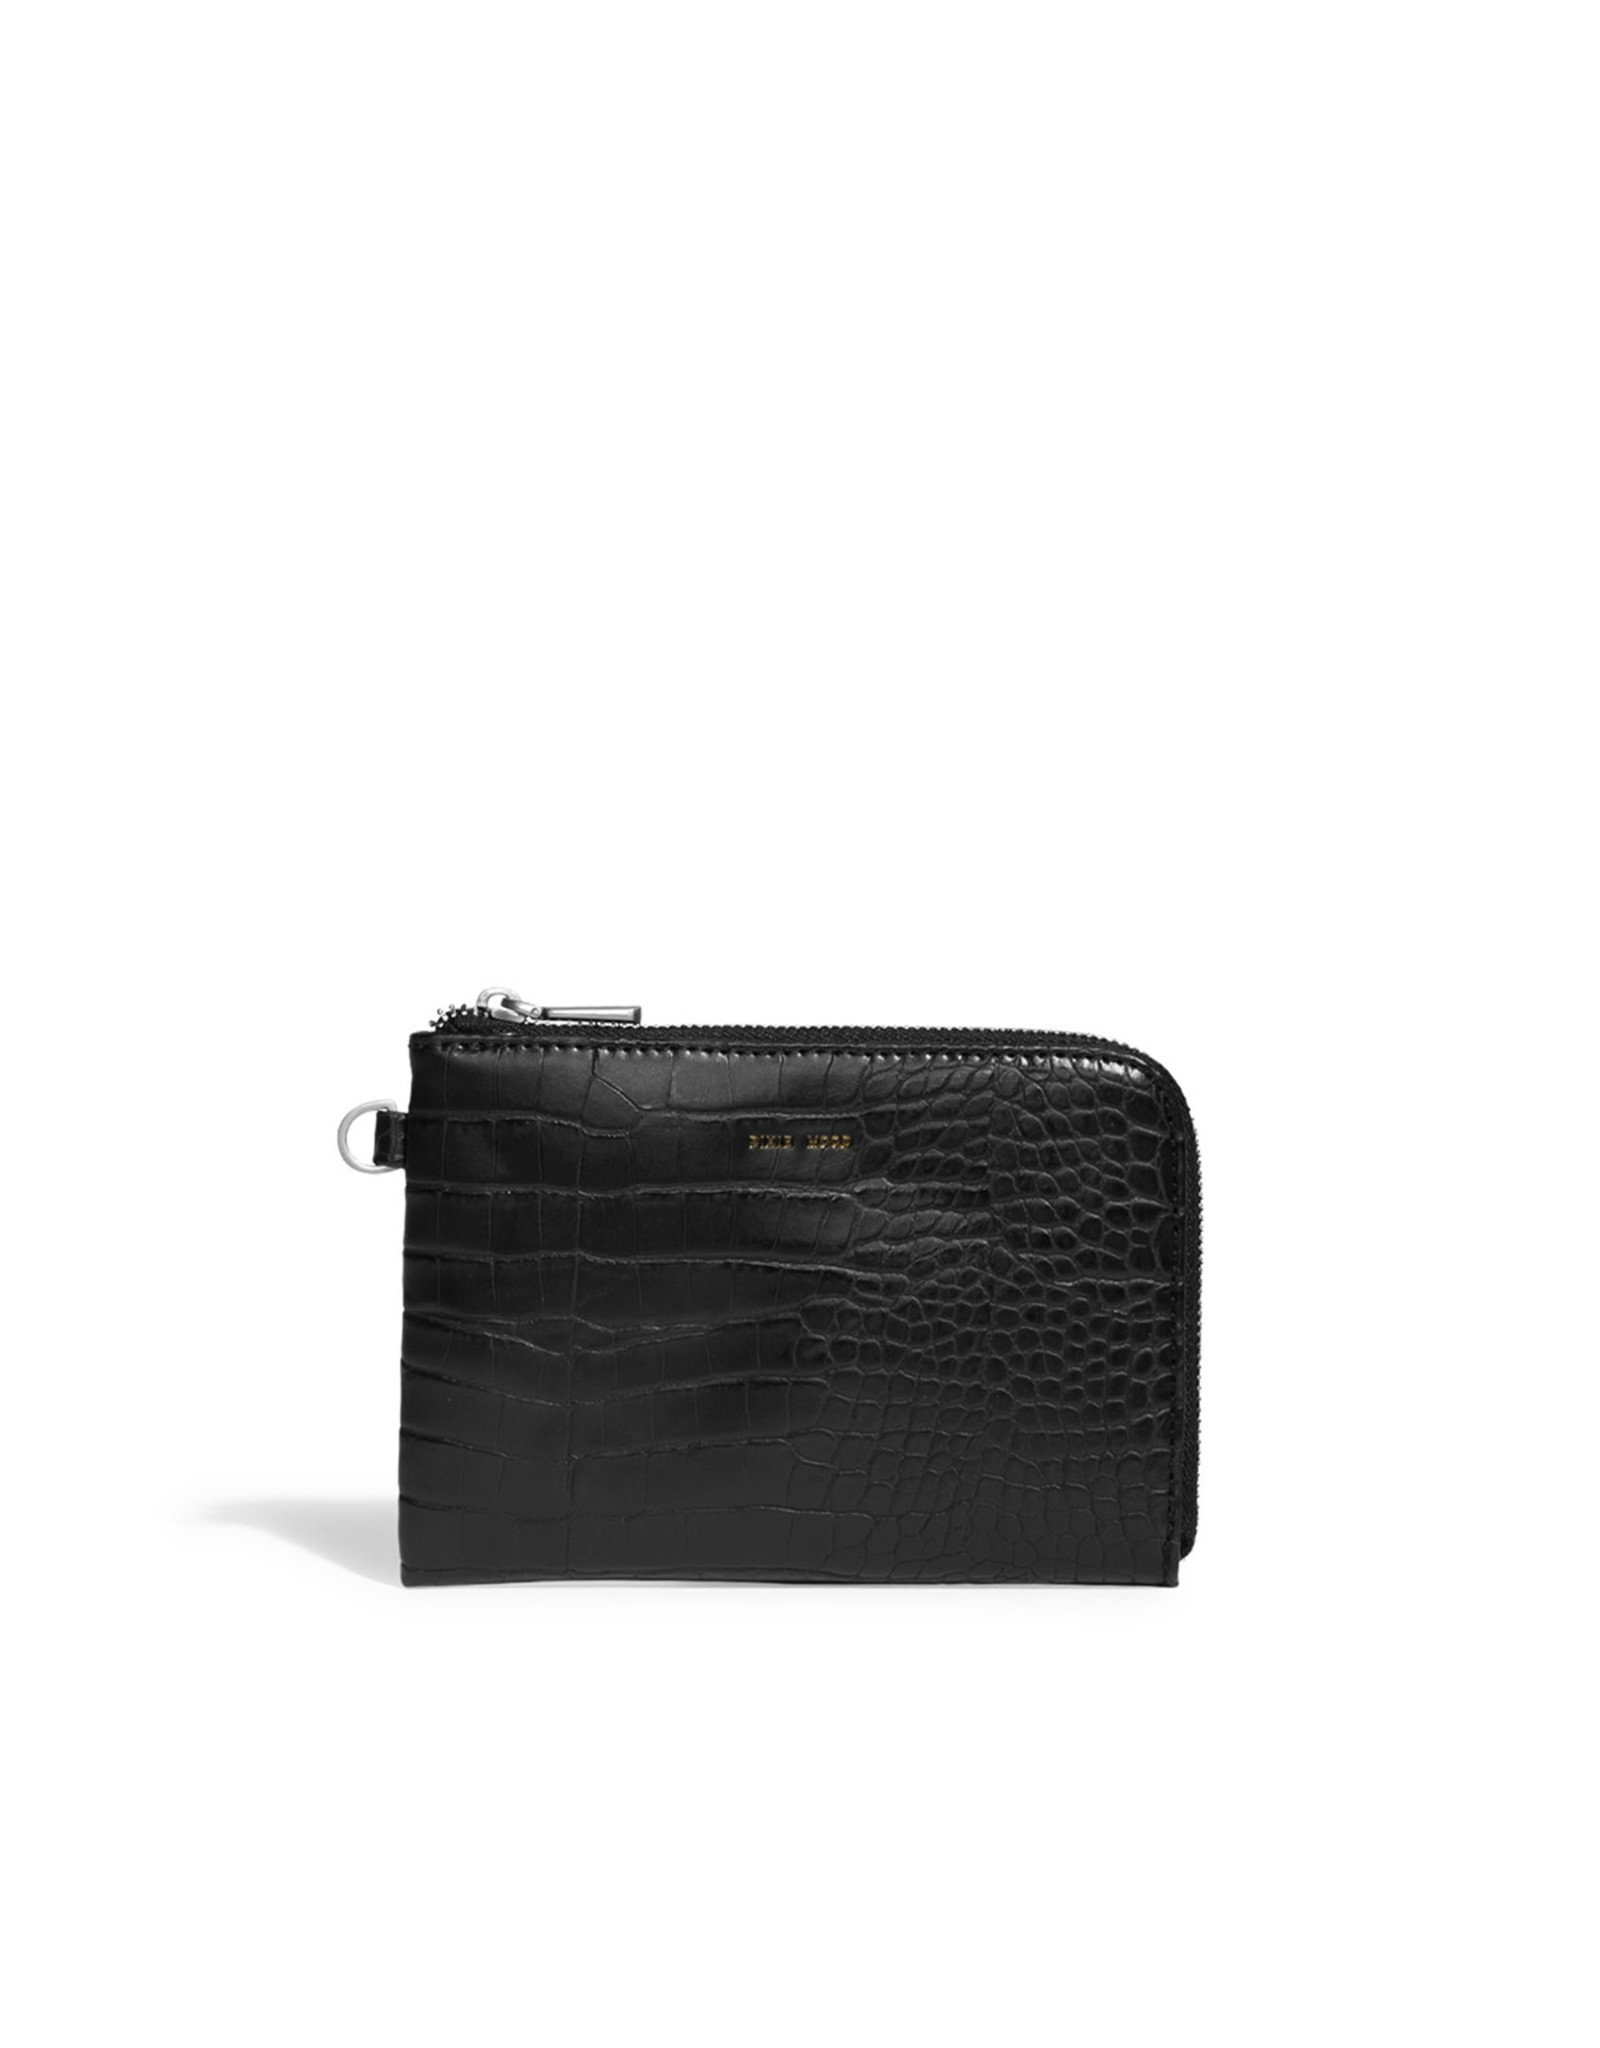 Pixie Mood - Stacy Wristlet blk croc